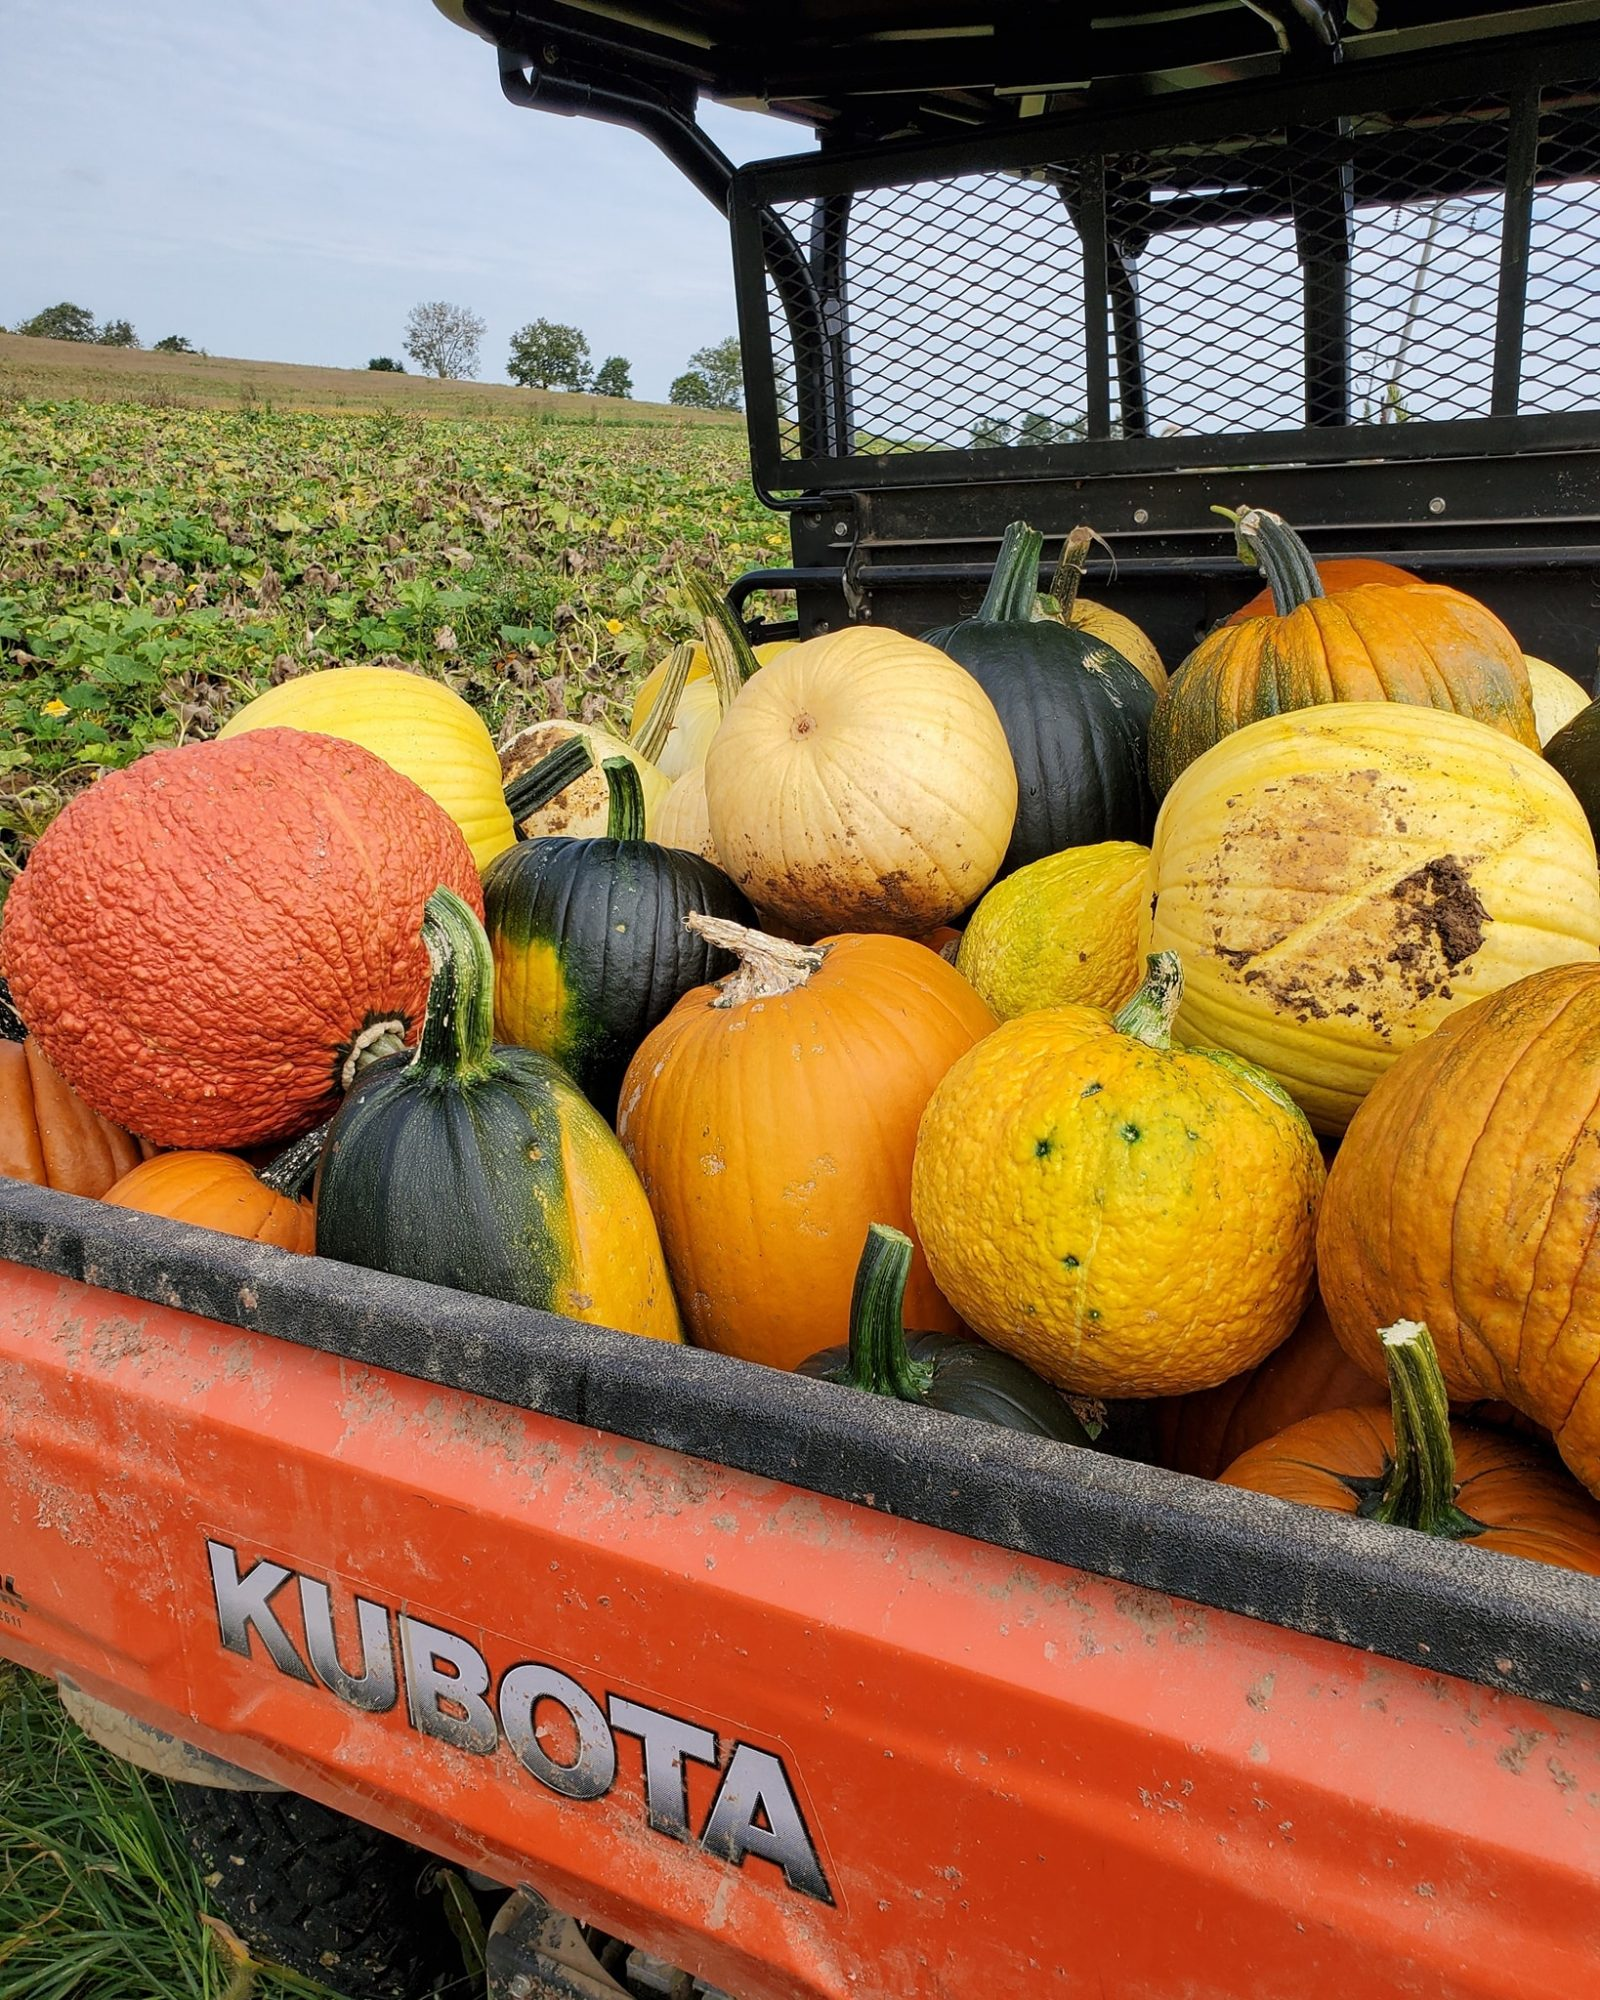 Pumpkins and Assorted Gourds in a Red Tractor Bed